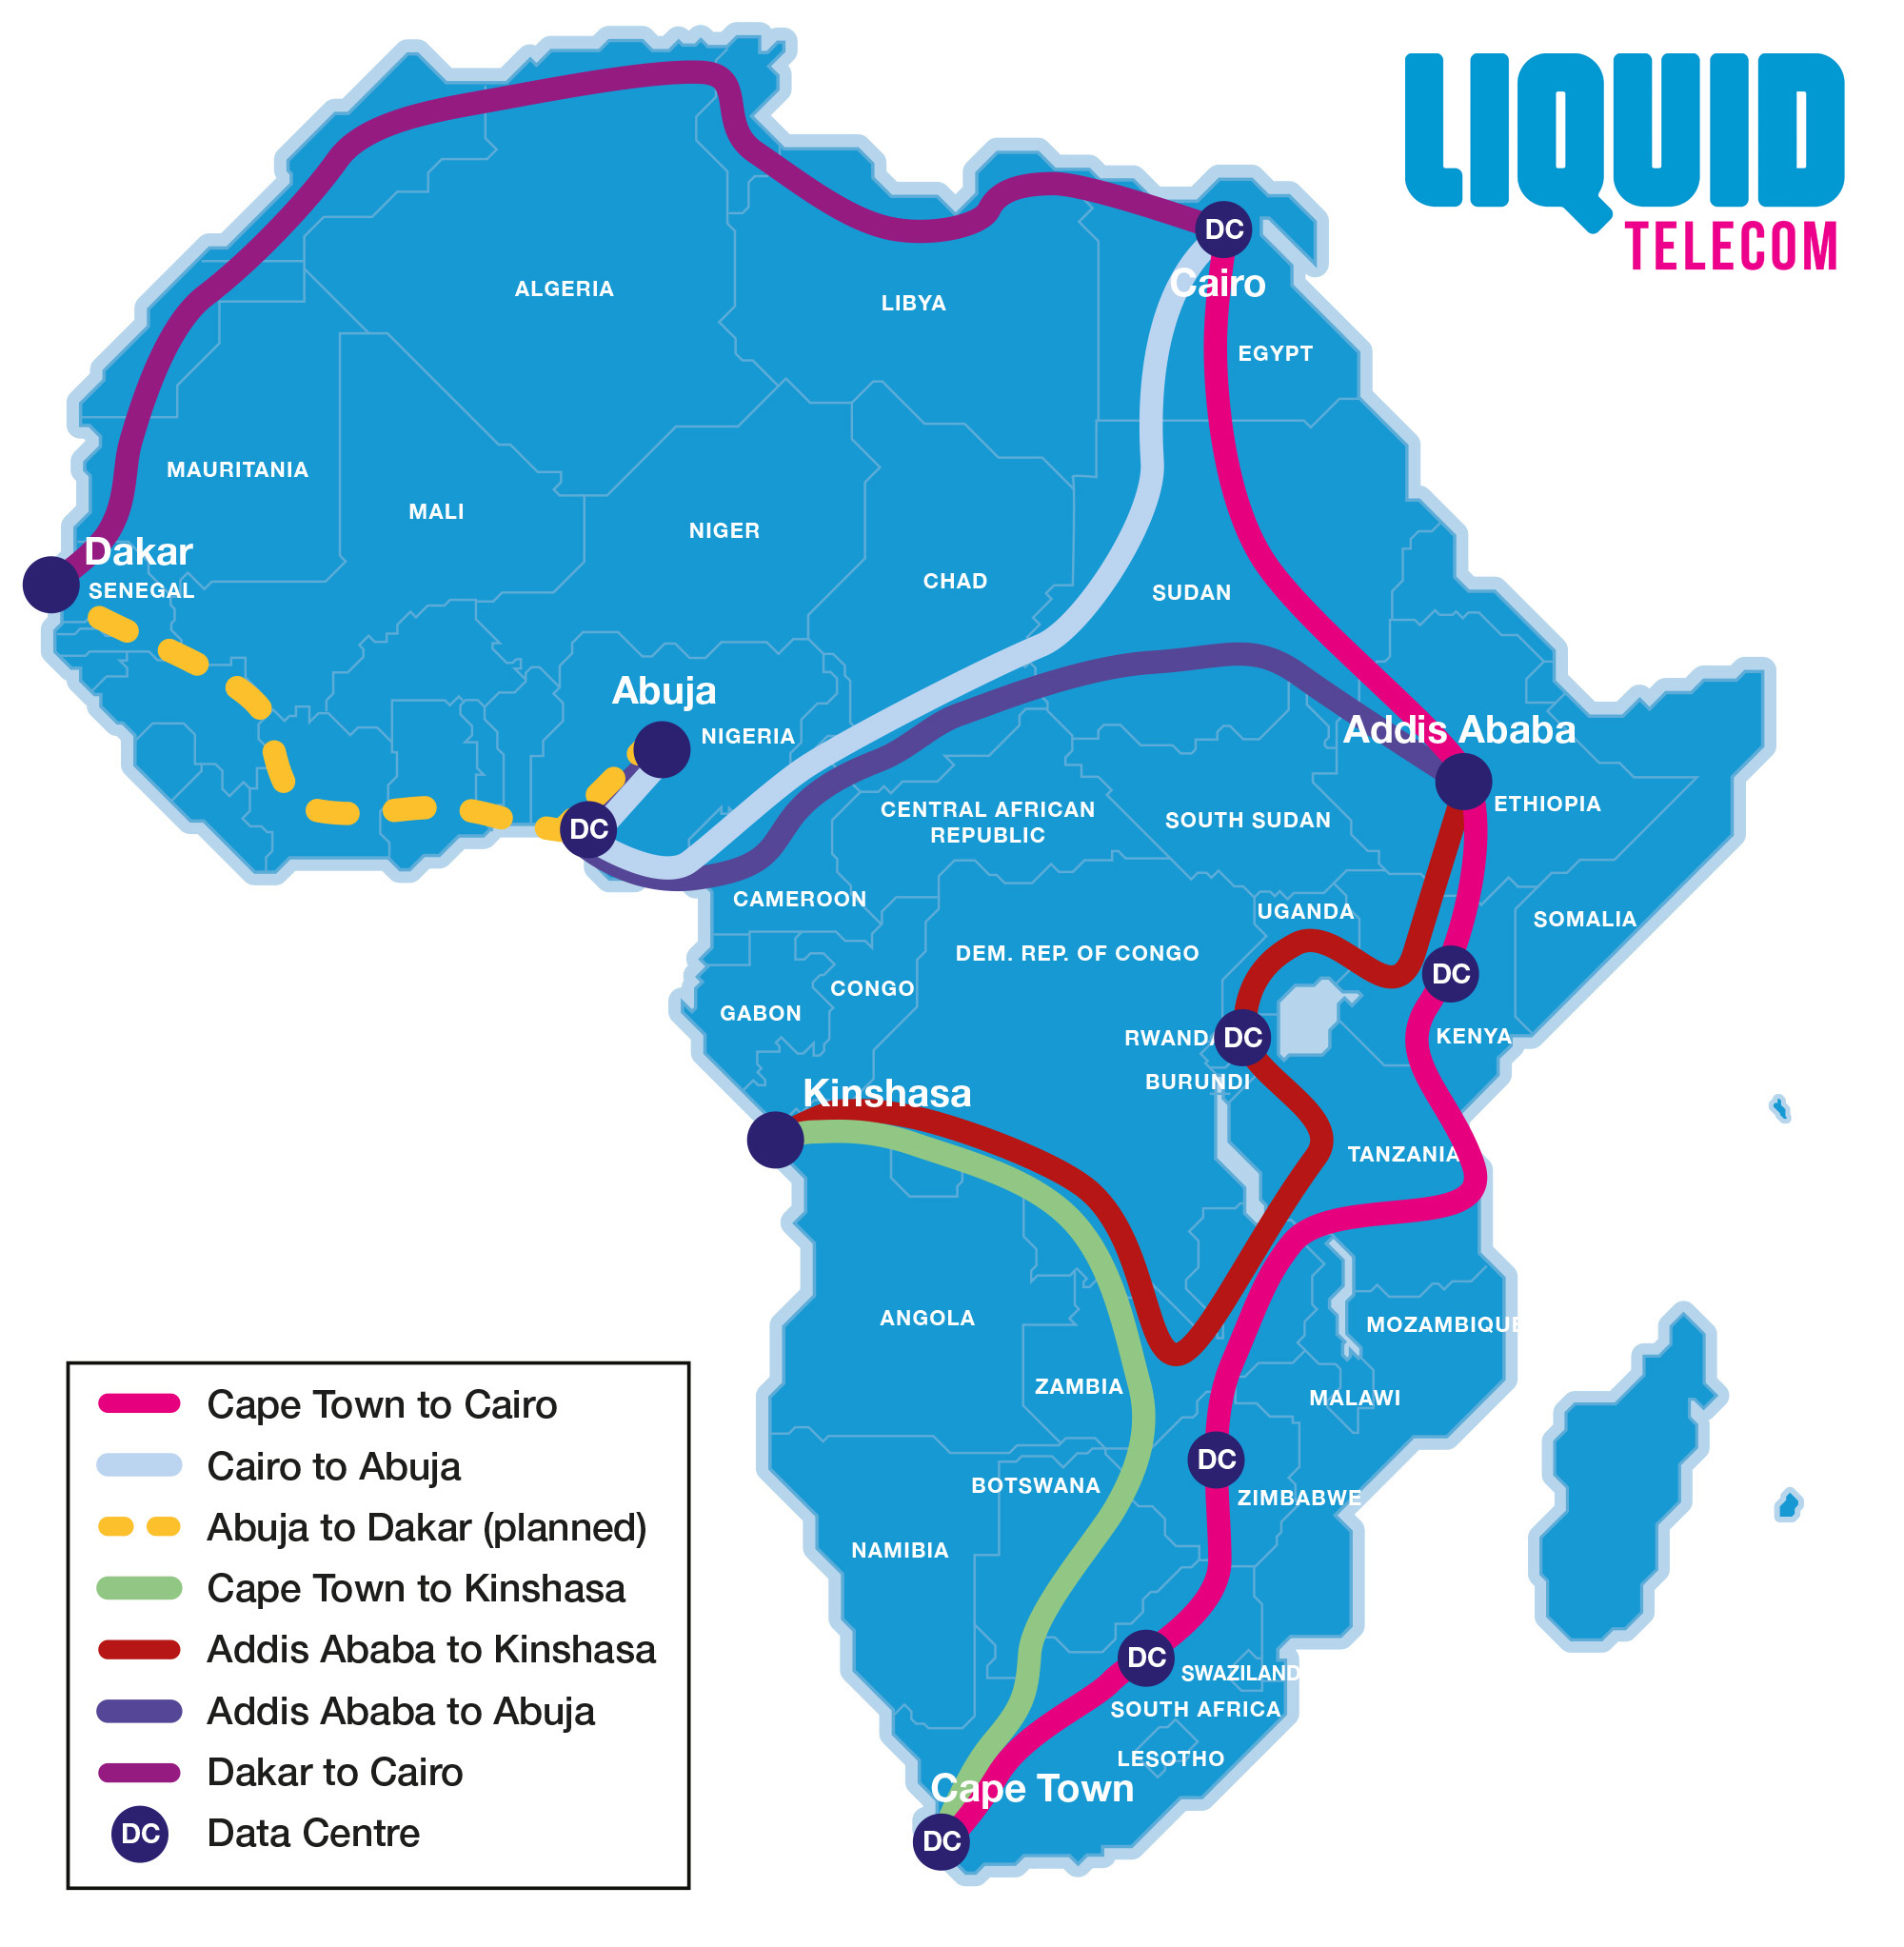 Liquid Telecom to invest 8bn EGP ($400m USD) in Egyptian network infrastructure and data centres.